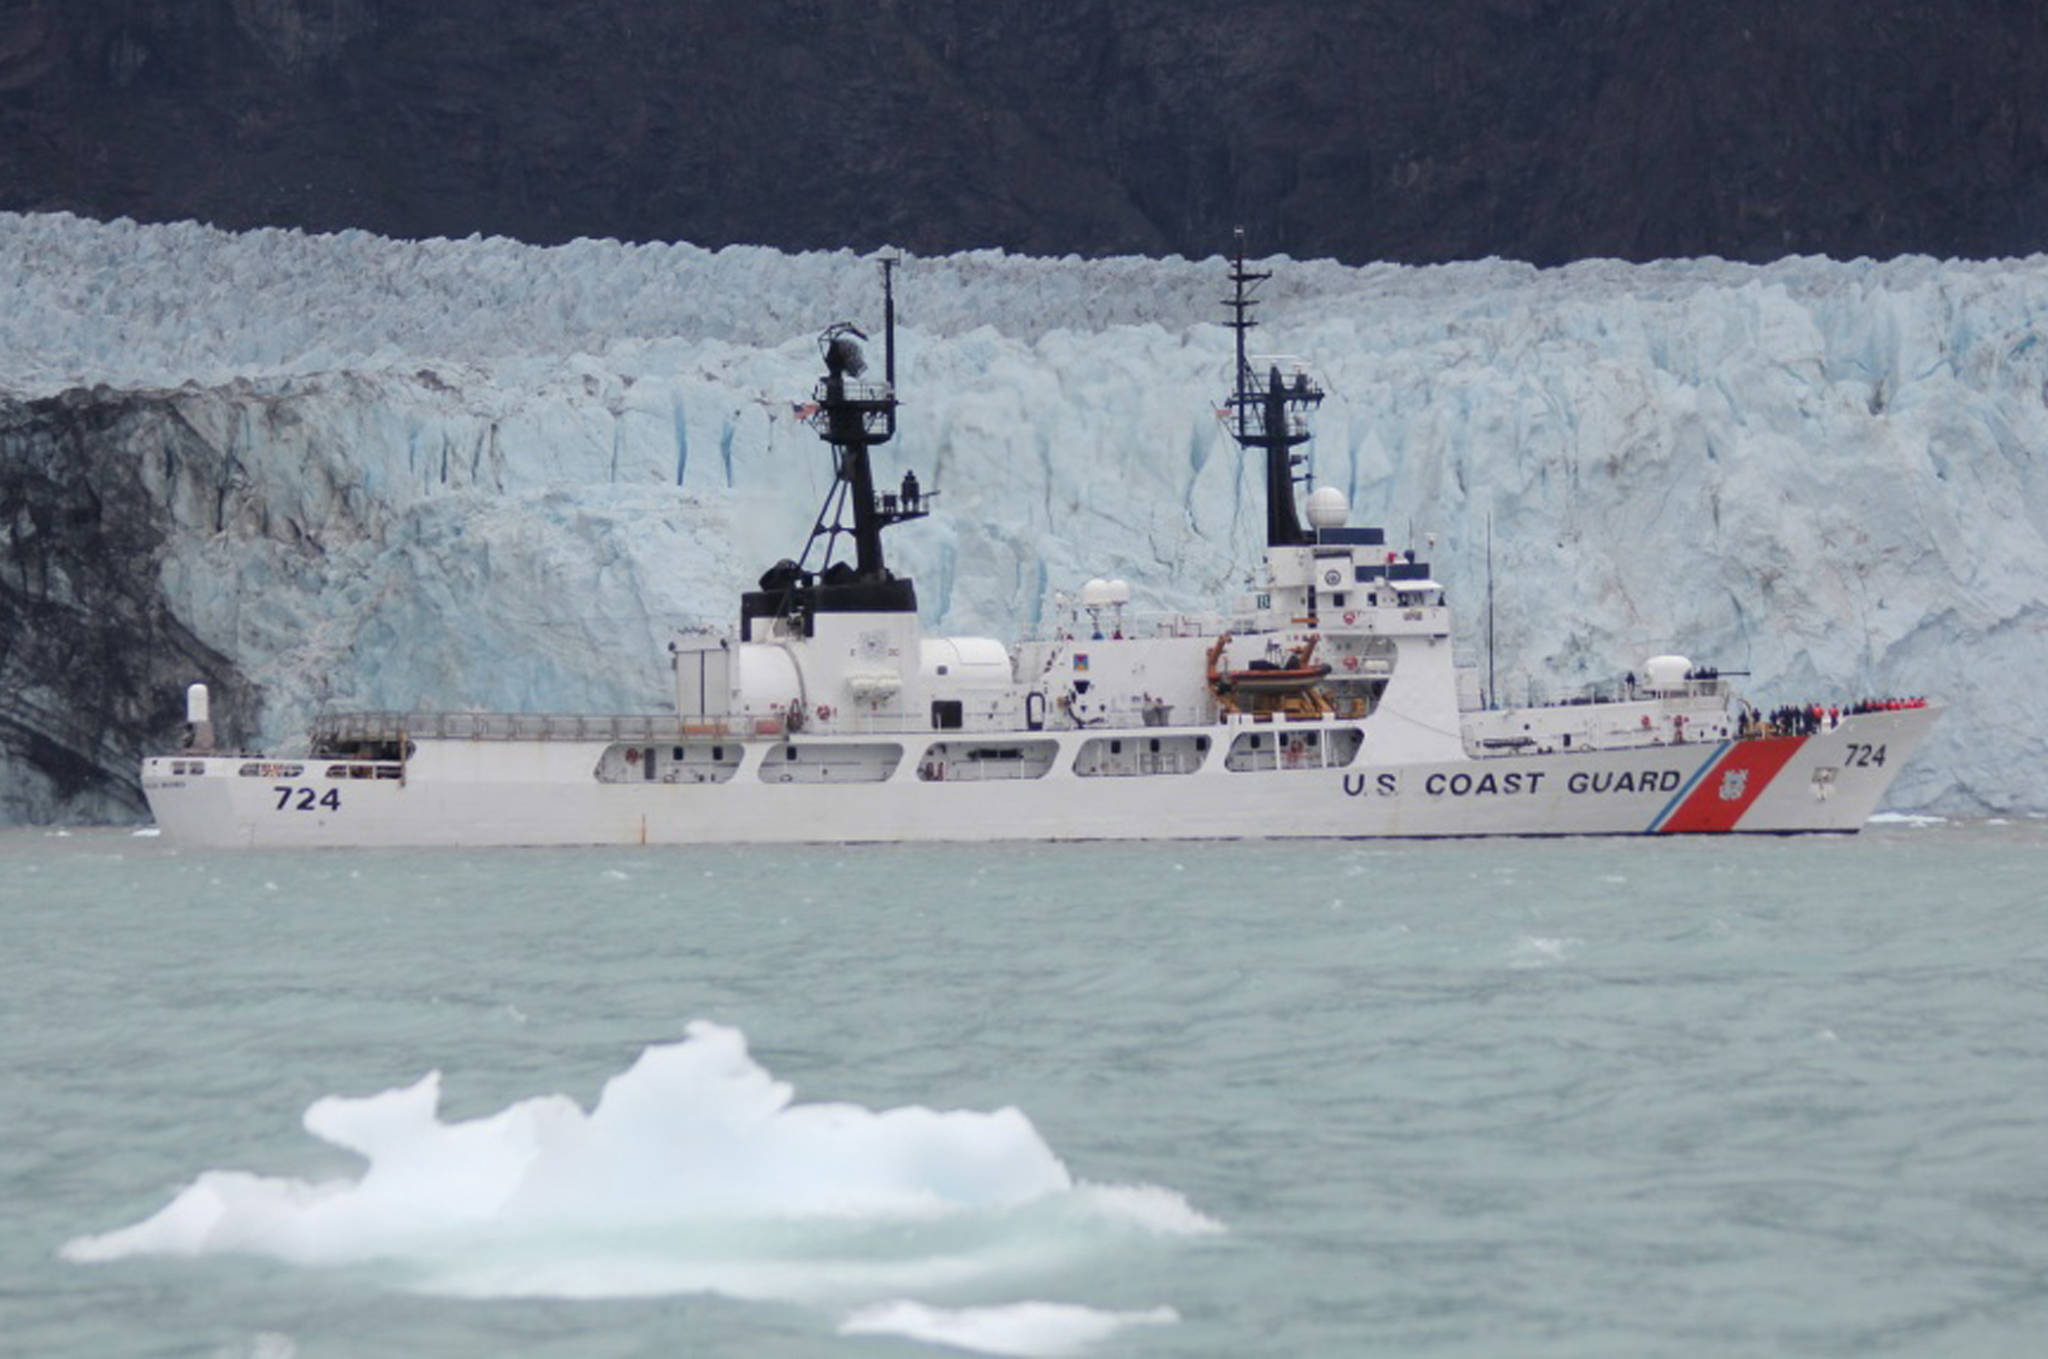 The Coast Guard Cutter Douglas Munro sails past Margerie Glacier in Glacier Bay National Park, Alaska, July 15, 2018. The Douglas Munro crew assisted the Glacier Bay National Park Service personnel in rescuing four people whose kayaks overturned in rough waters, but all four people made it to shore. (U.S. Coast Guard | Courtesy Photo)